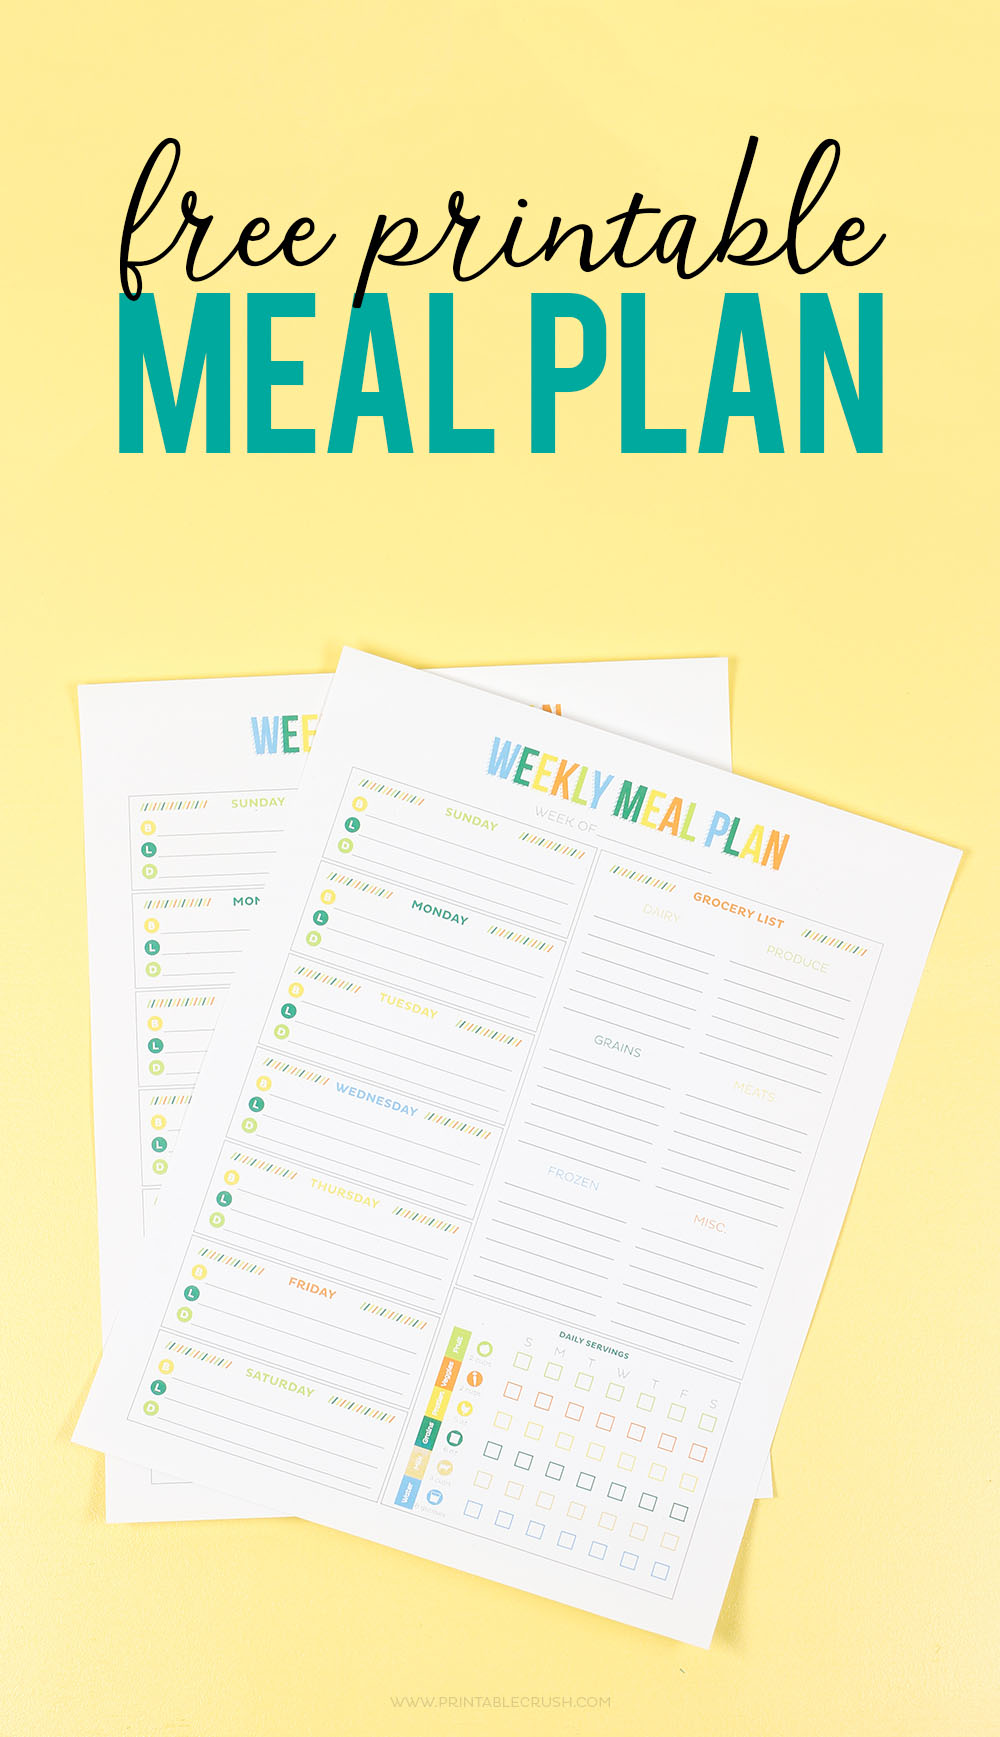 photograph regarding Weekly Meal Planner Printable named No cost Printable Weekly Dinner Planner - Printable Crush